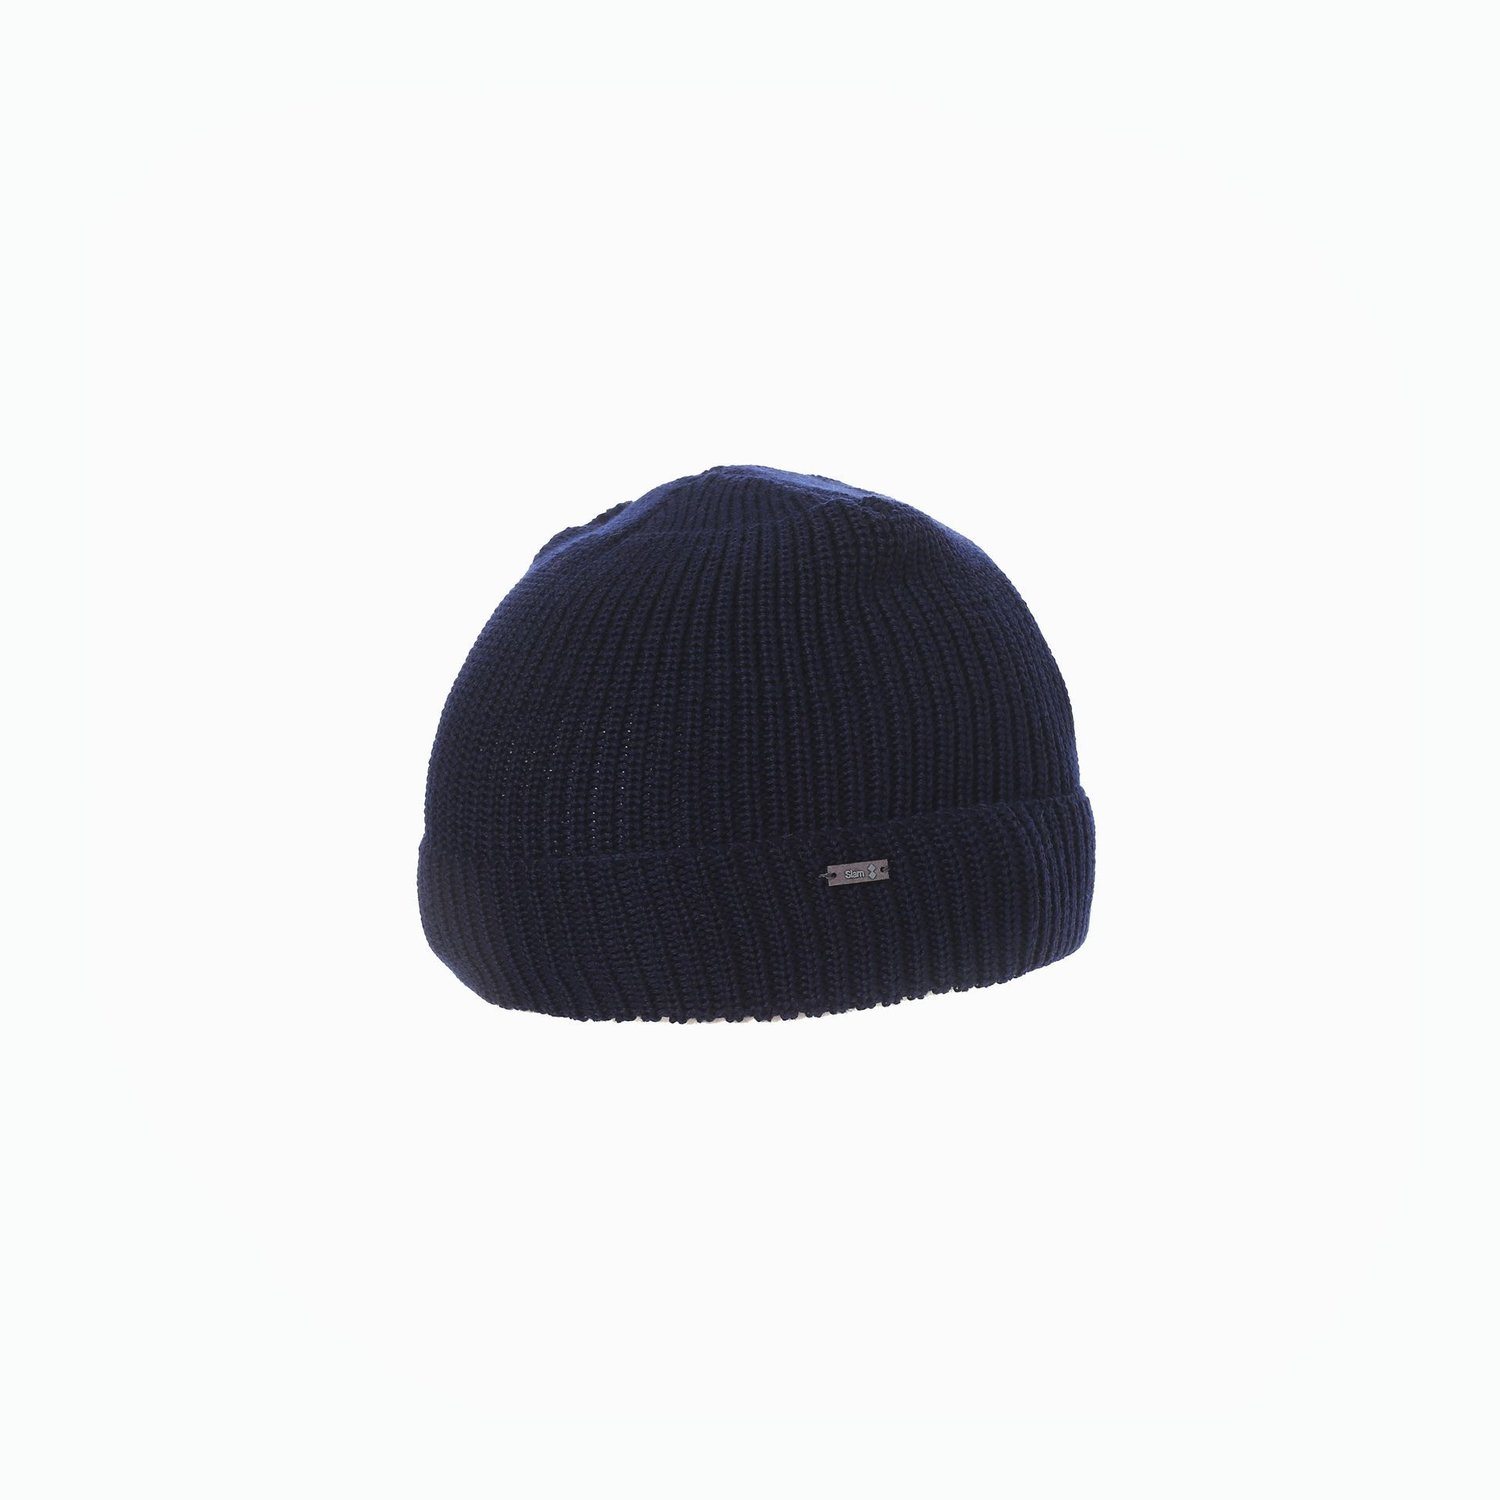 Wool hat - Marinenblau